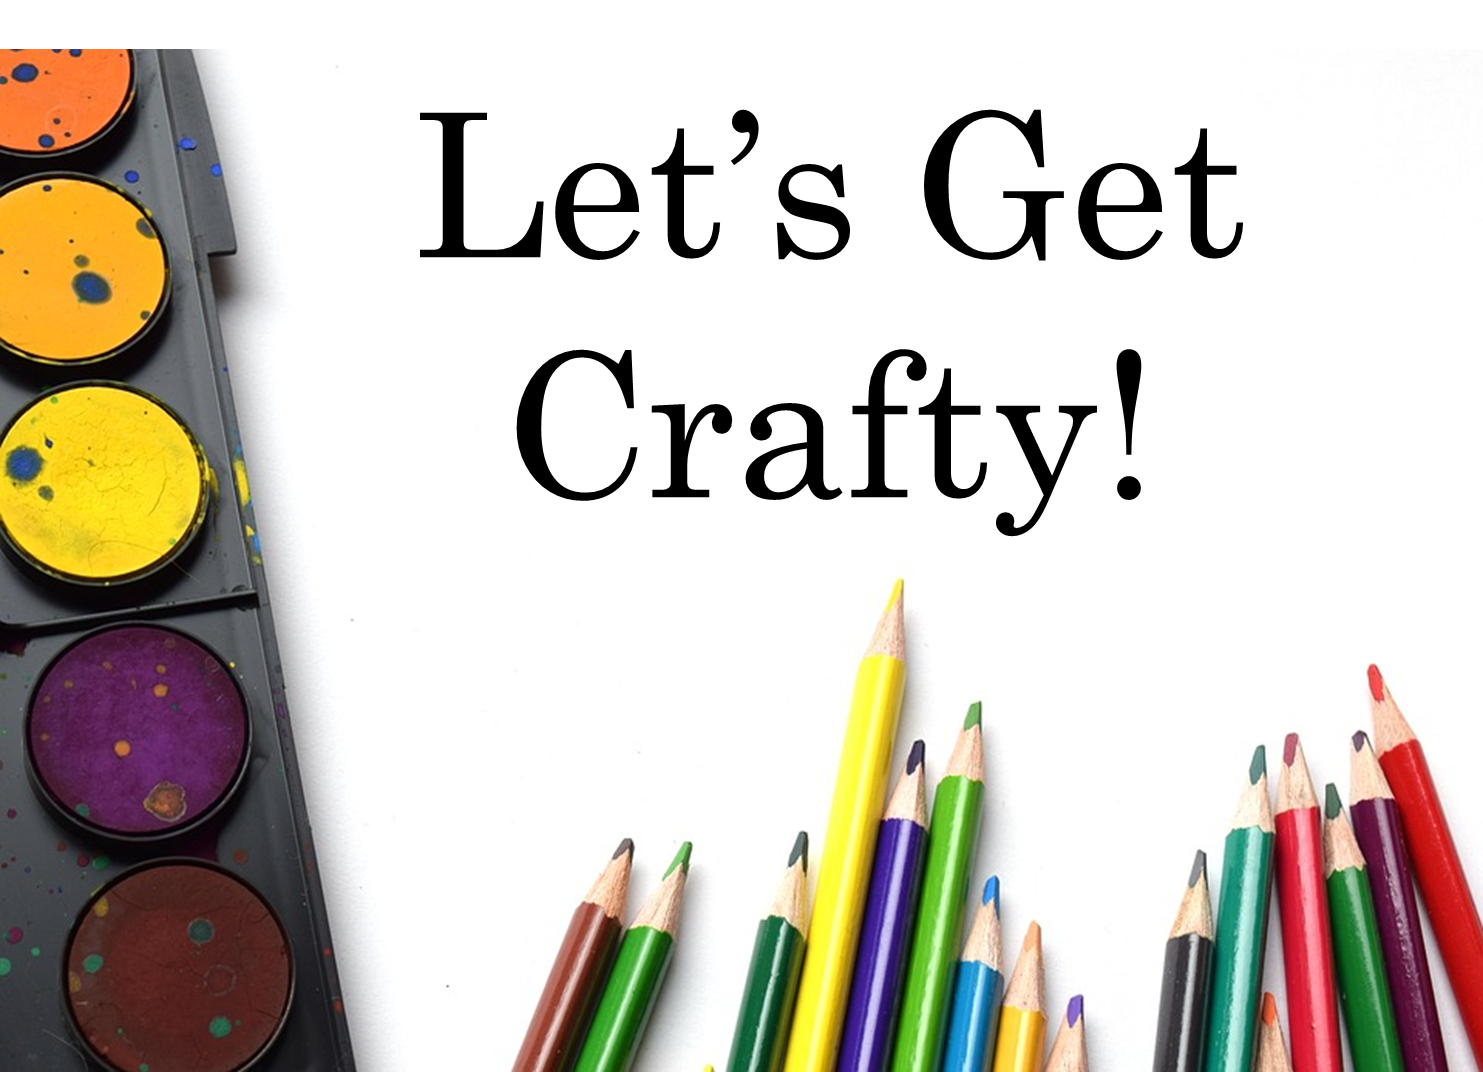 Let's Get Crafty with water color paint set and colored pencils.